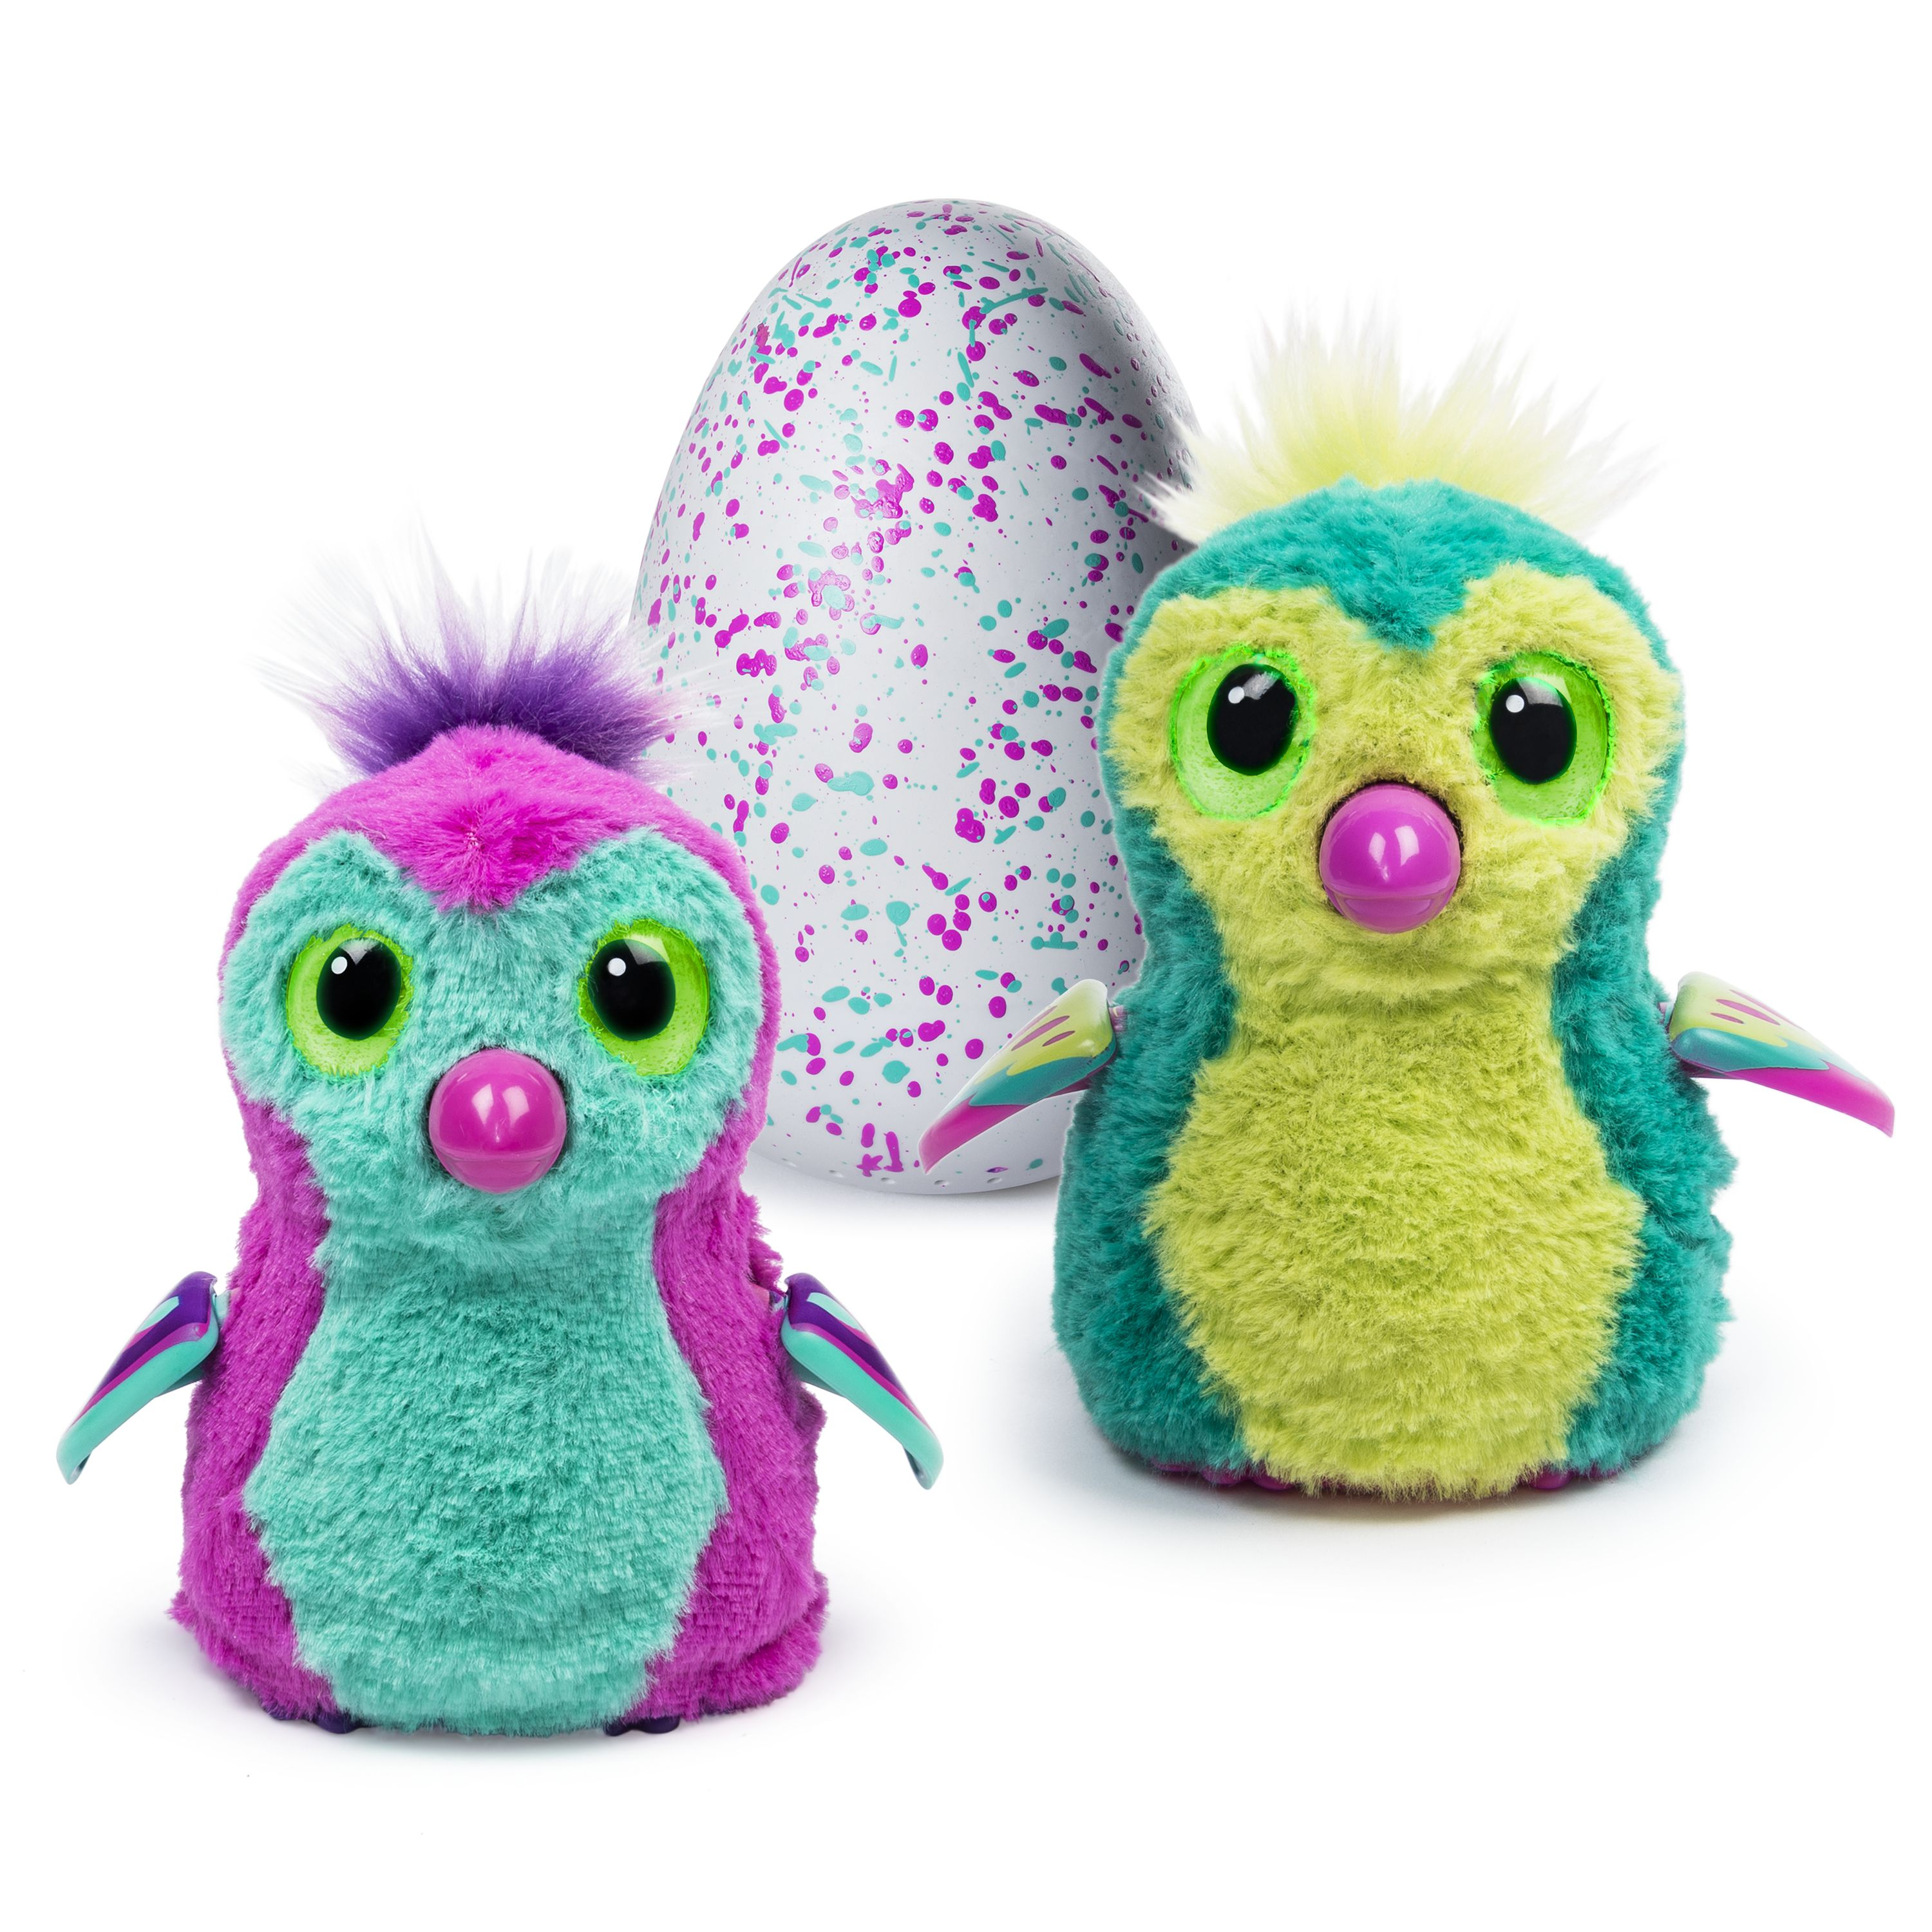 Hatchimals, Hatching Egg, Interactive Creature, Penguala, Pink/Teal Egg by Spin Master